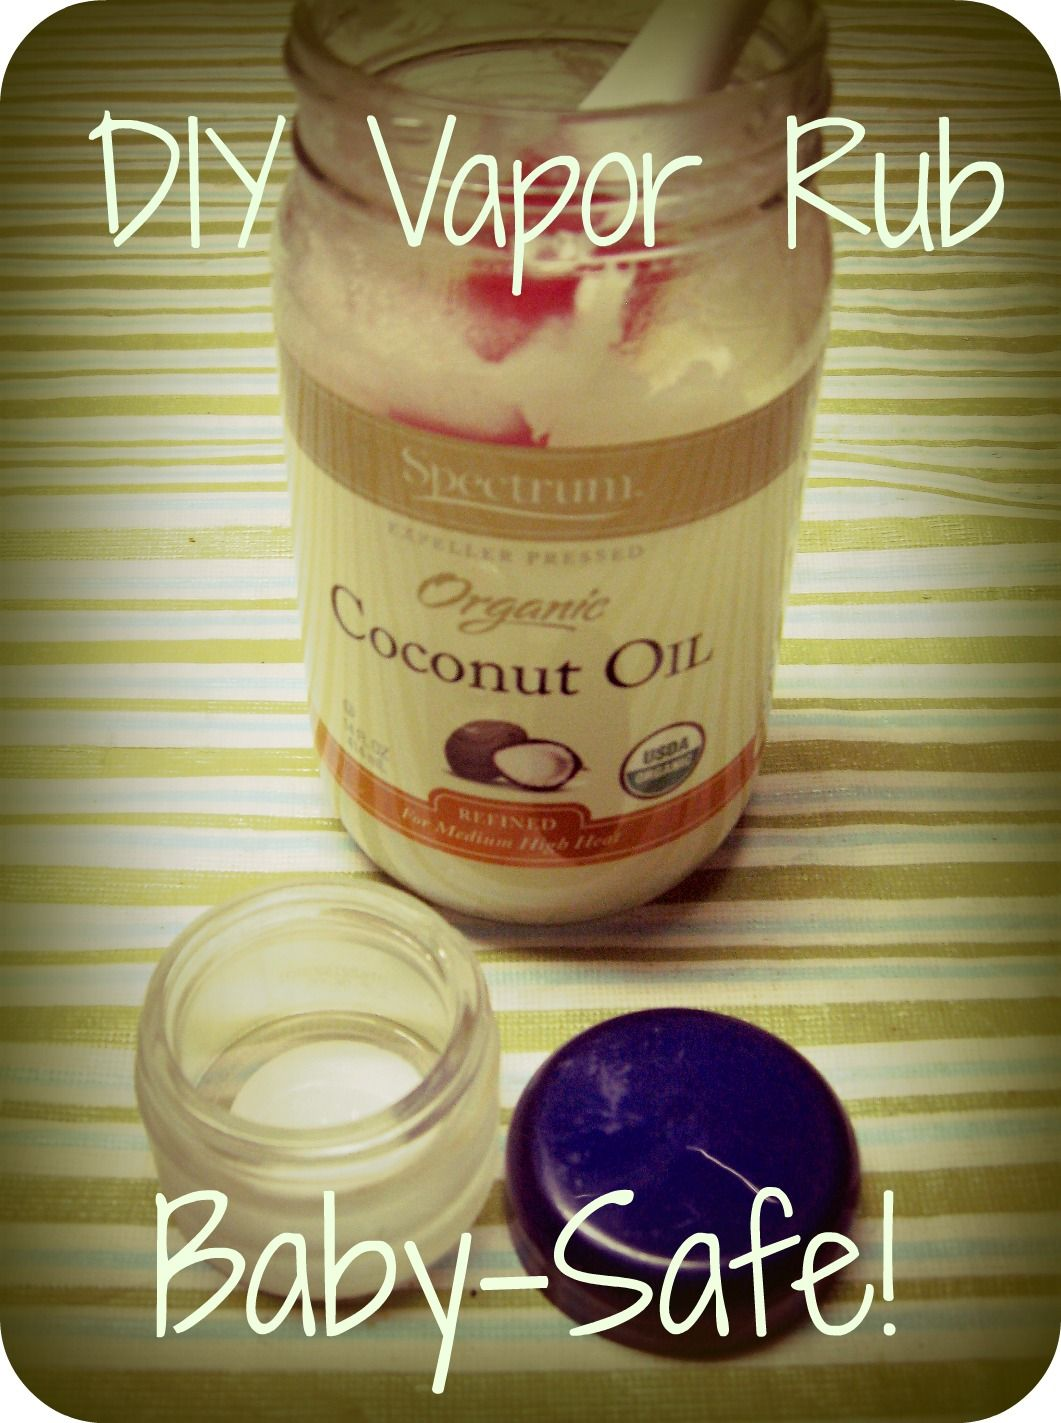 Diy Vapor Rub 3 Tbsp Coconut Oil 5 10 Drops Eucalyptus